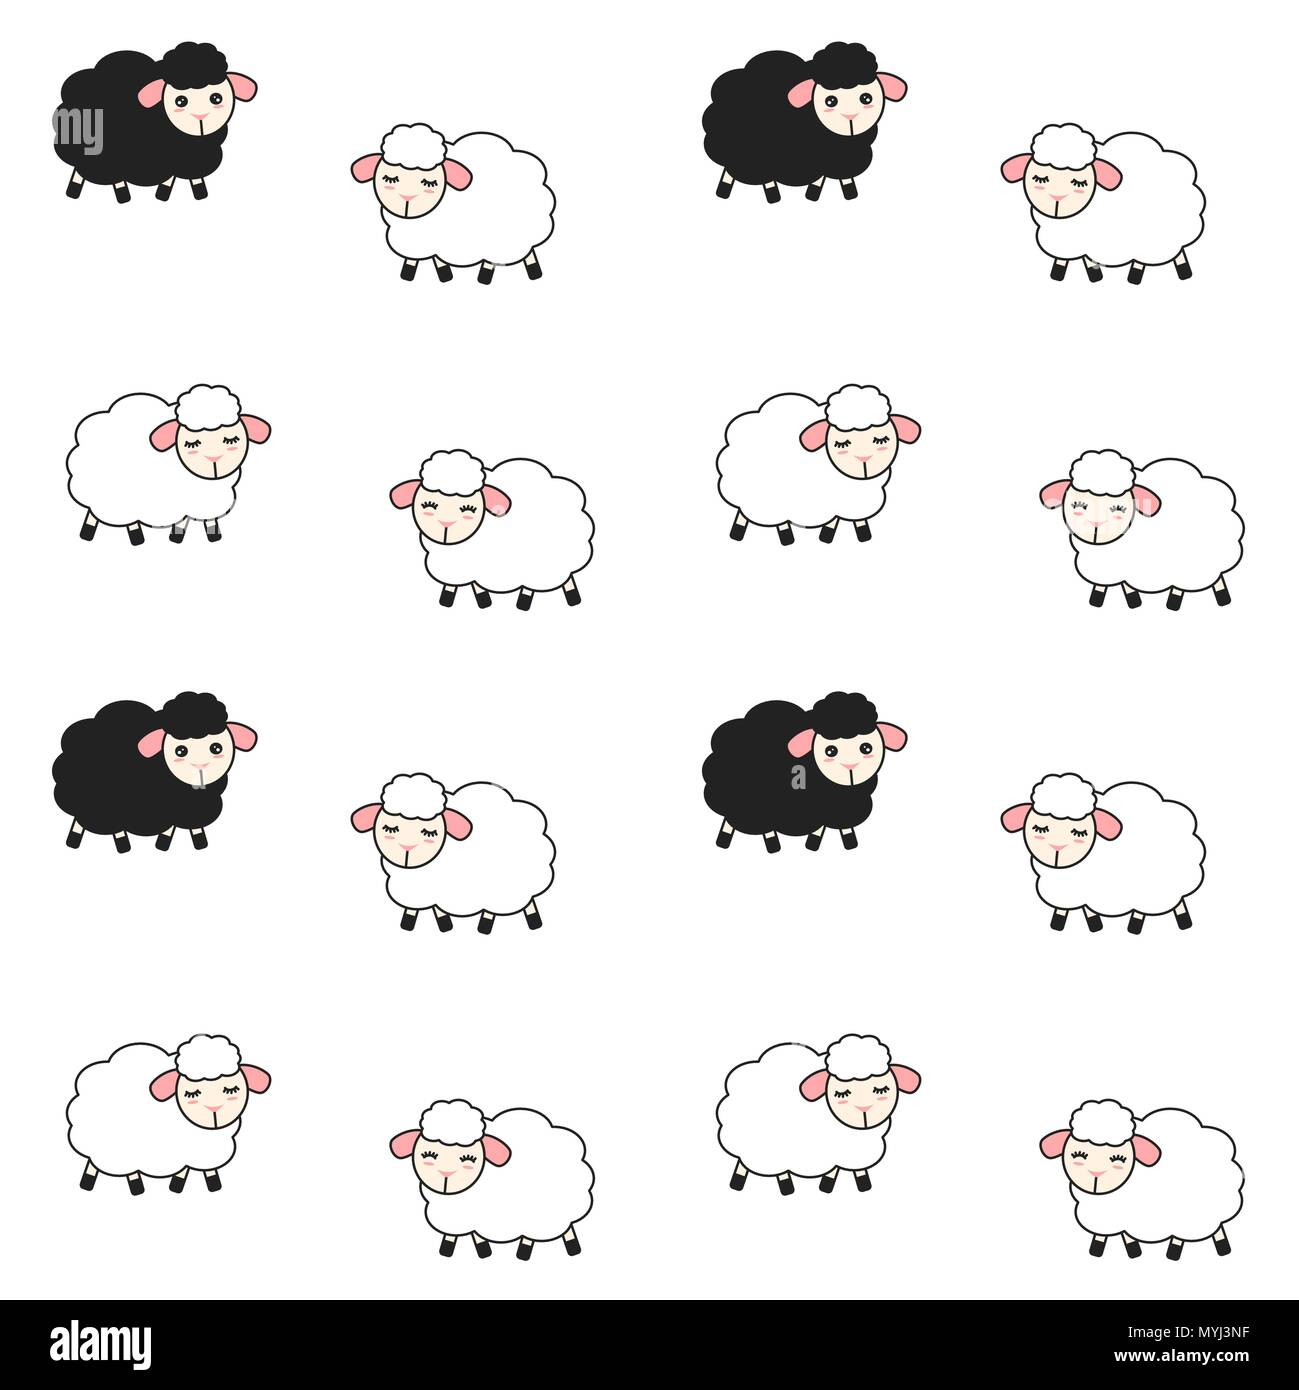 cute cartoon white and black sheeps seamless vector pattern background illustration - Stock Image